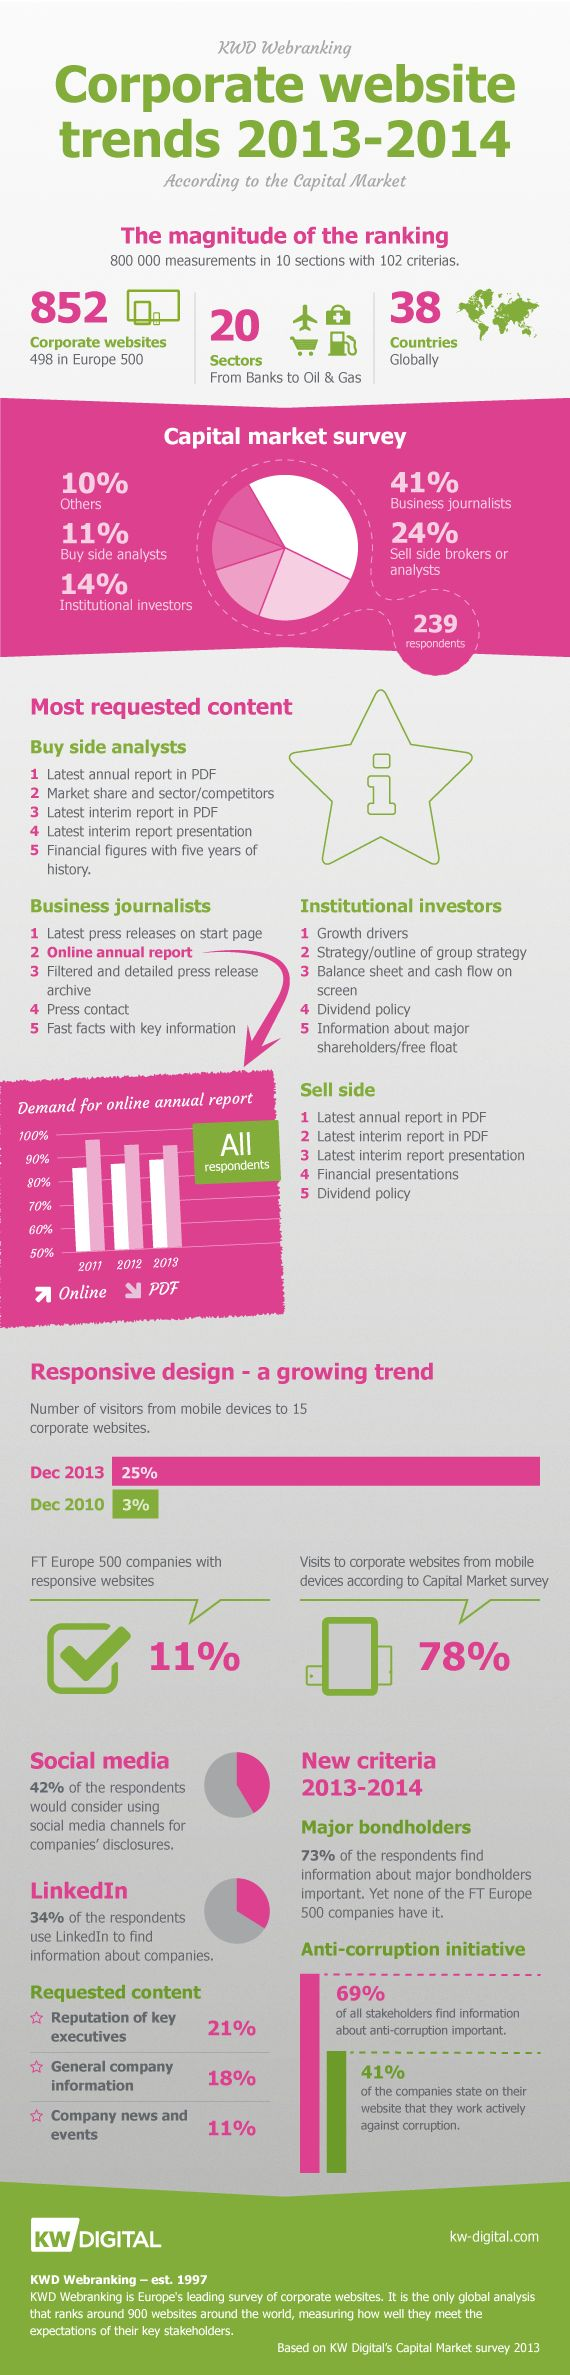 Corporate website trends according to analysts, investors, and business journalists in KW Digital's Capital Market Survey 2013 (KWD Webranking 2013-2014)